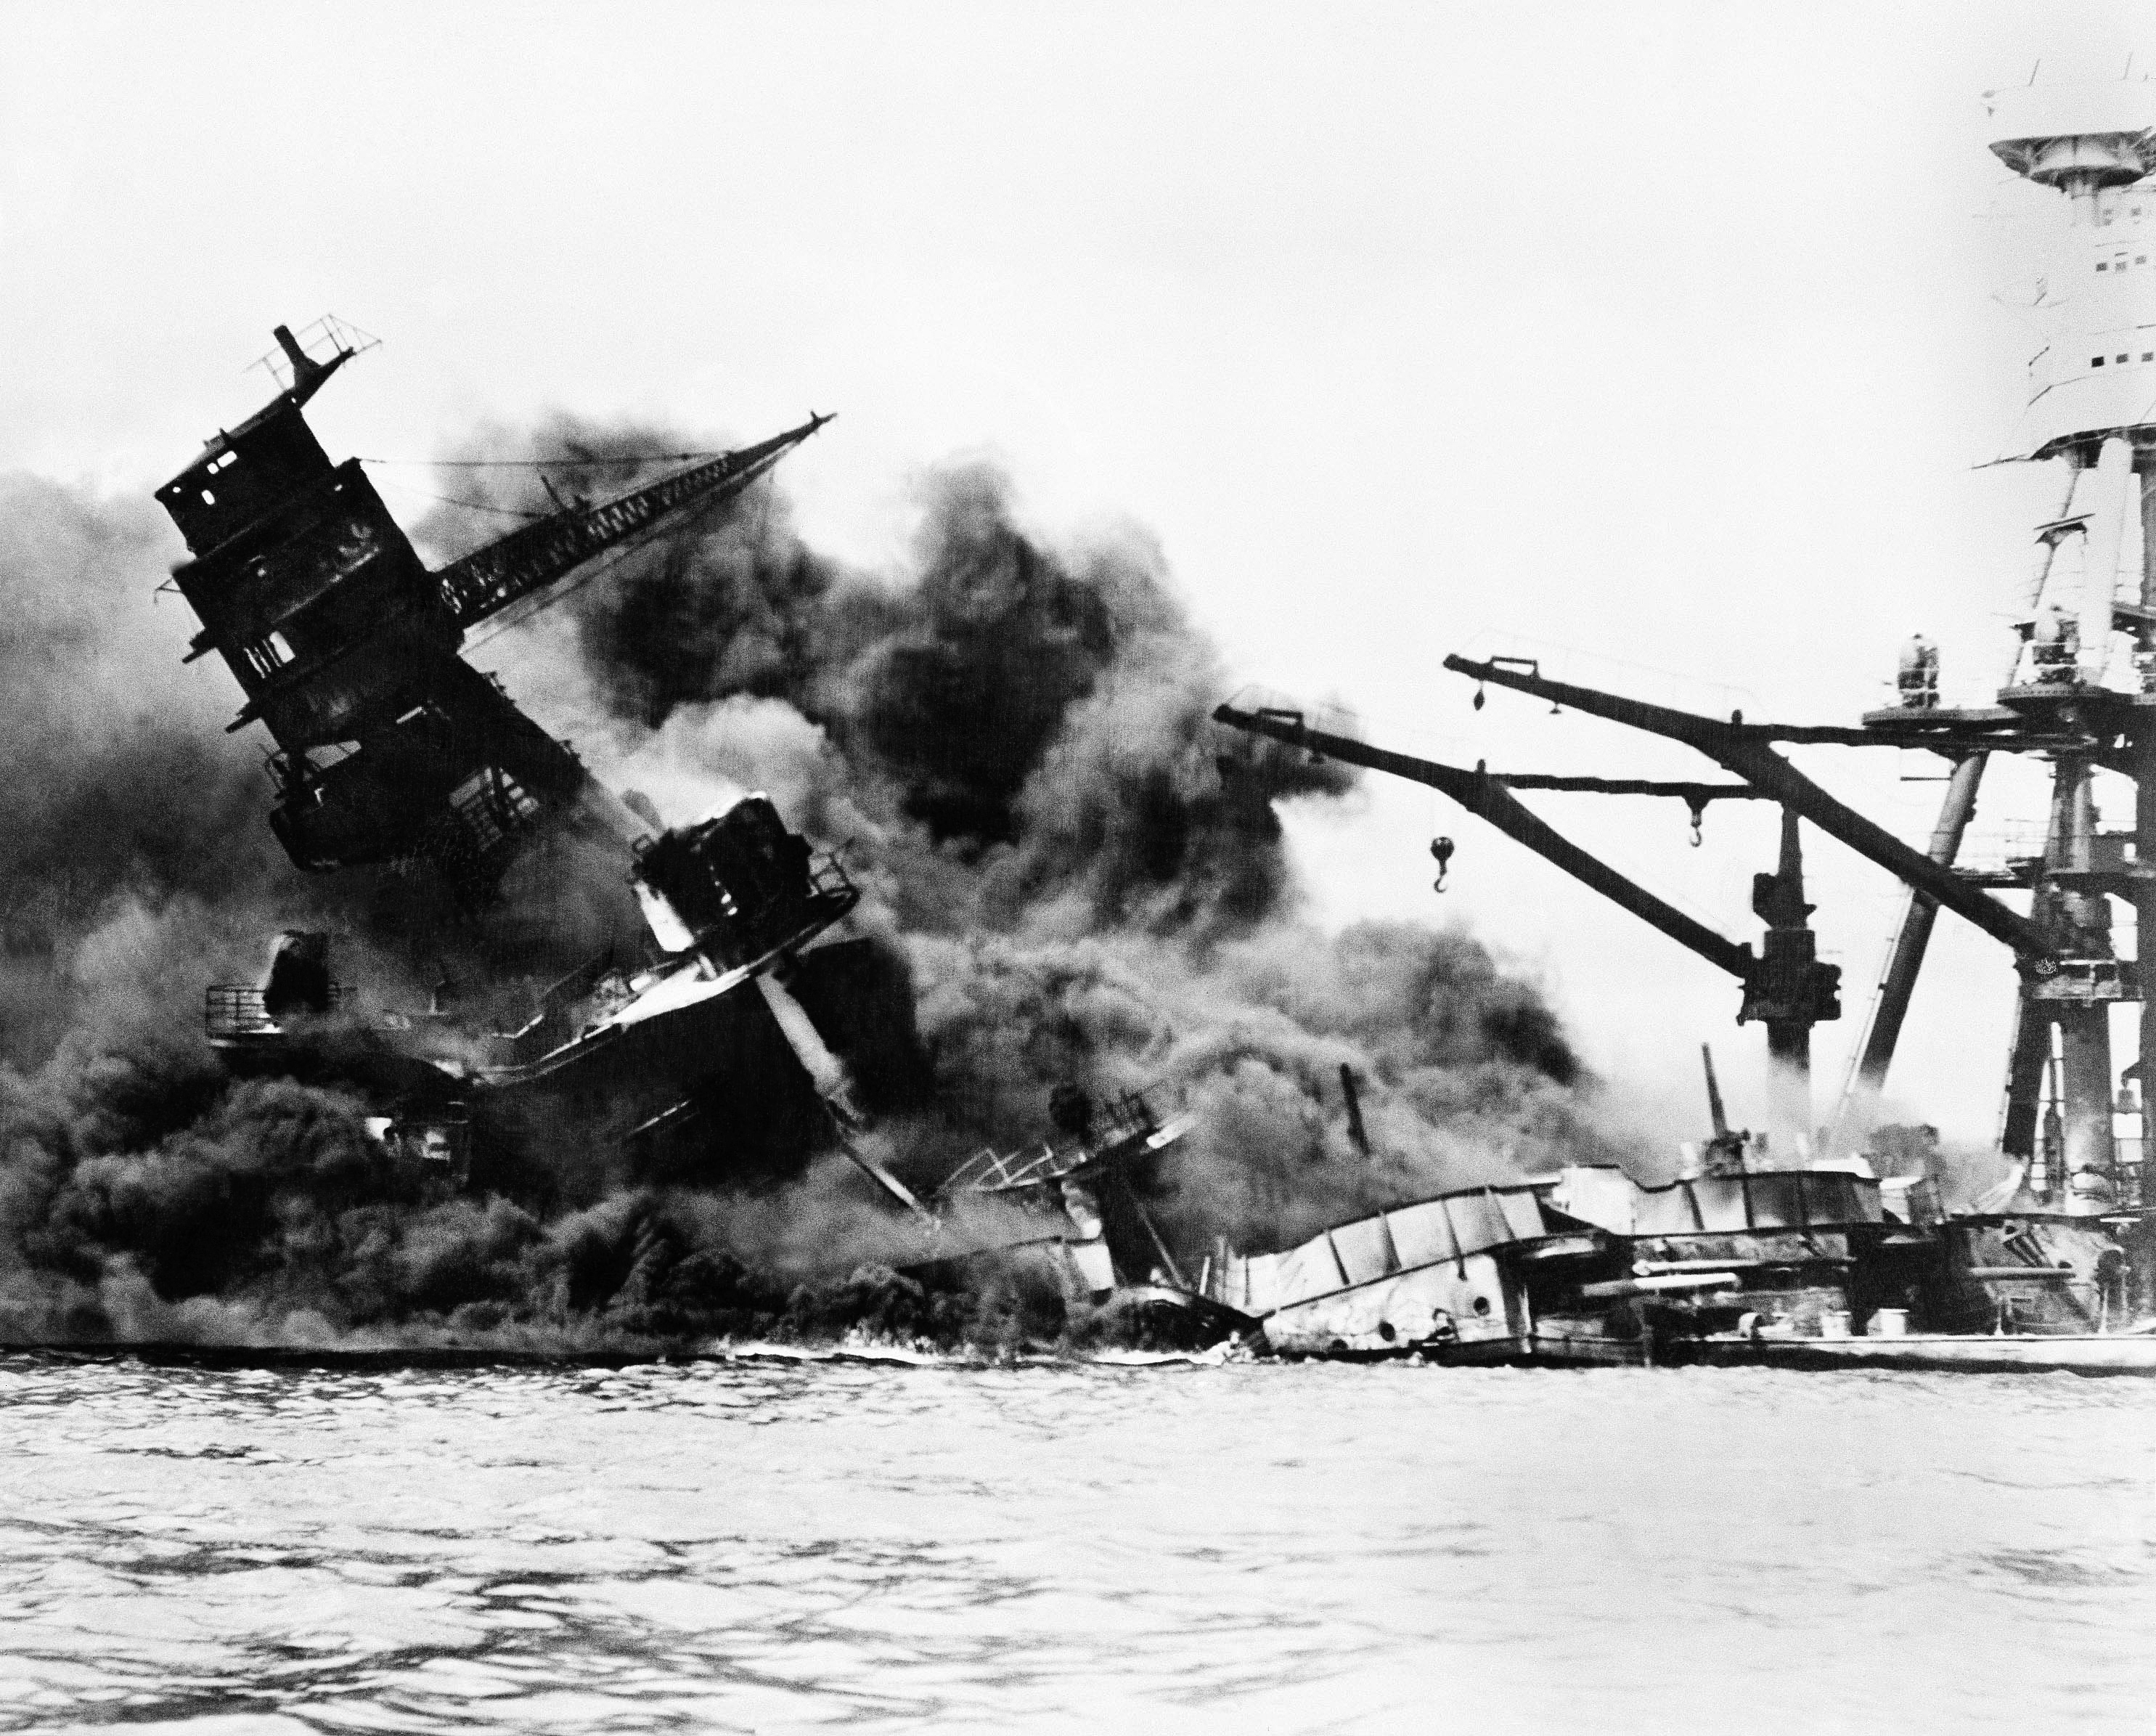 Japan Pm To Visit Hawaii With Obama To Remember Pearl Harbor